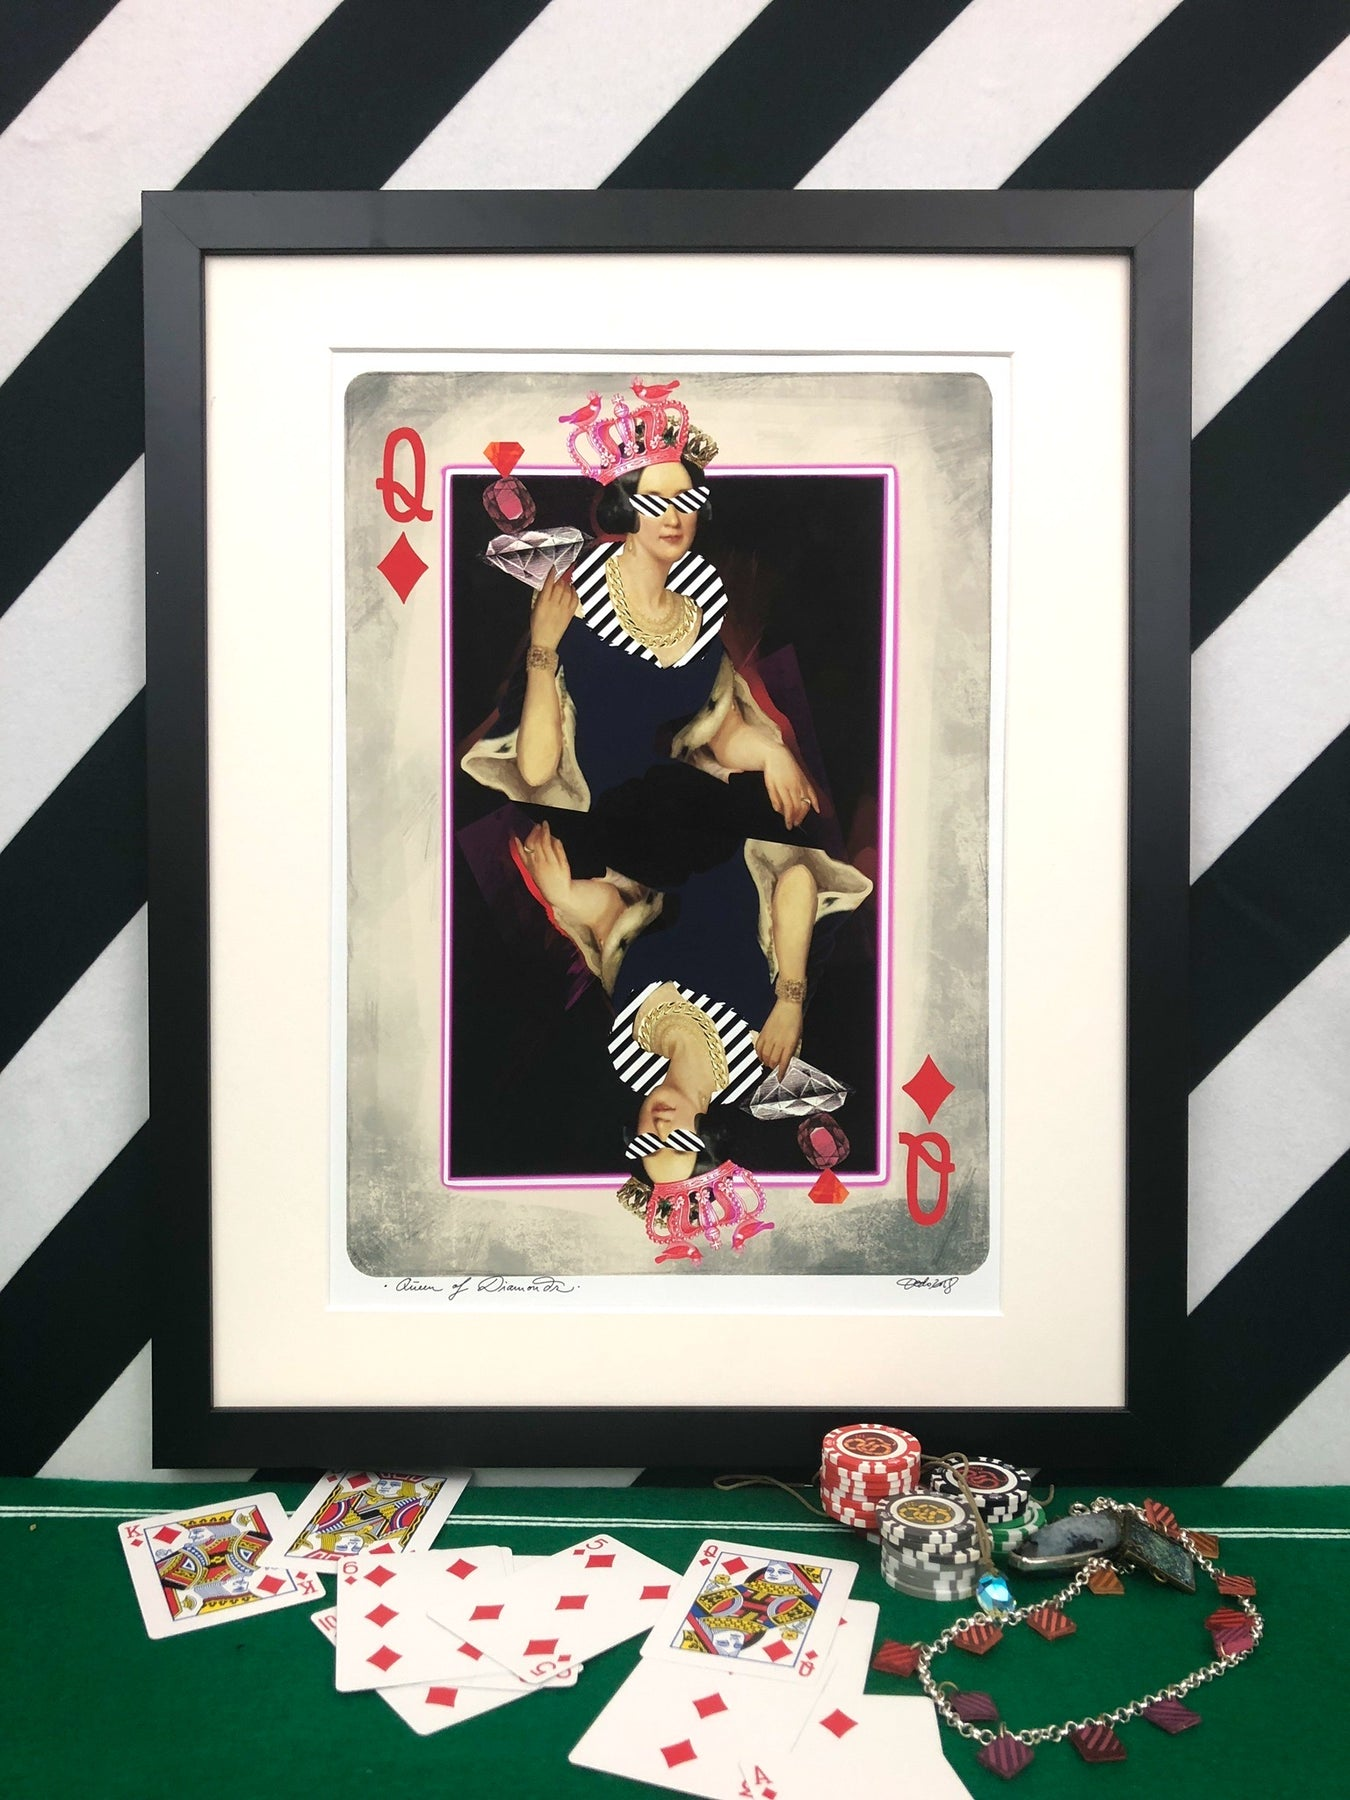 Framed print of the queen of diamonds playing card